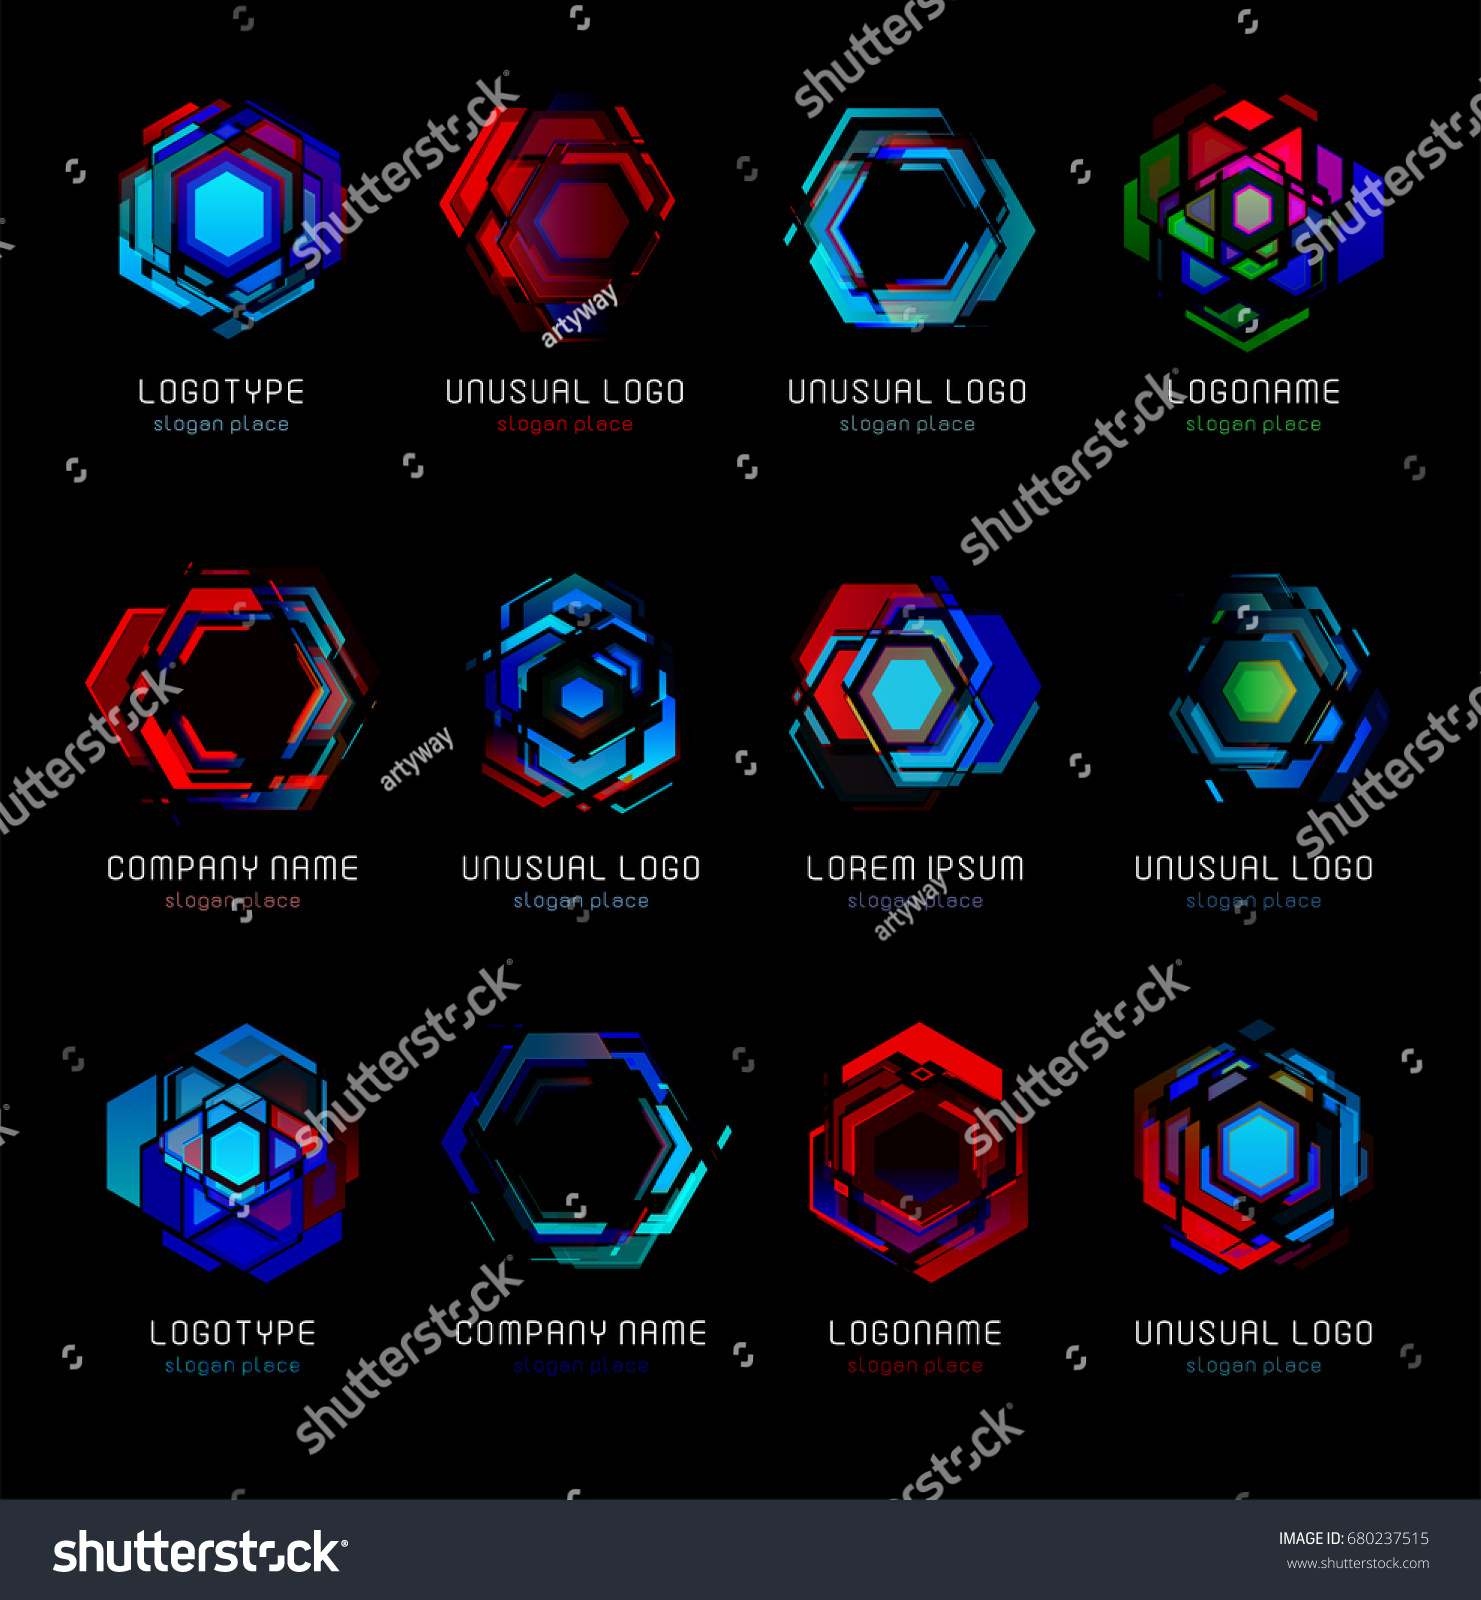 Futuristic Reactor Abstract Colorful Vector Logo Template Innovative Technologies Digital Design Effect Logos Set On